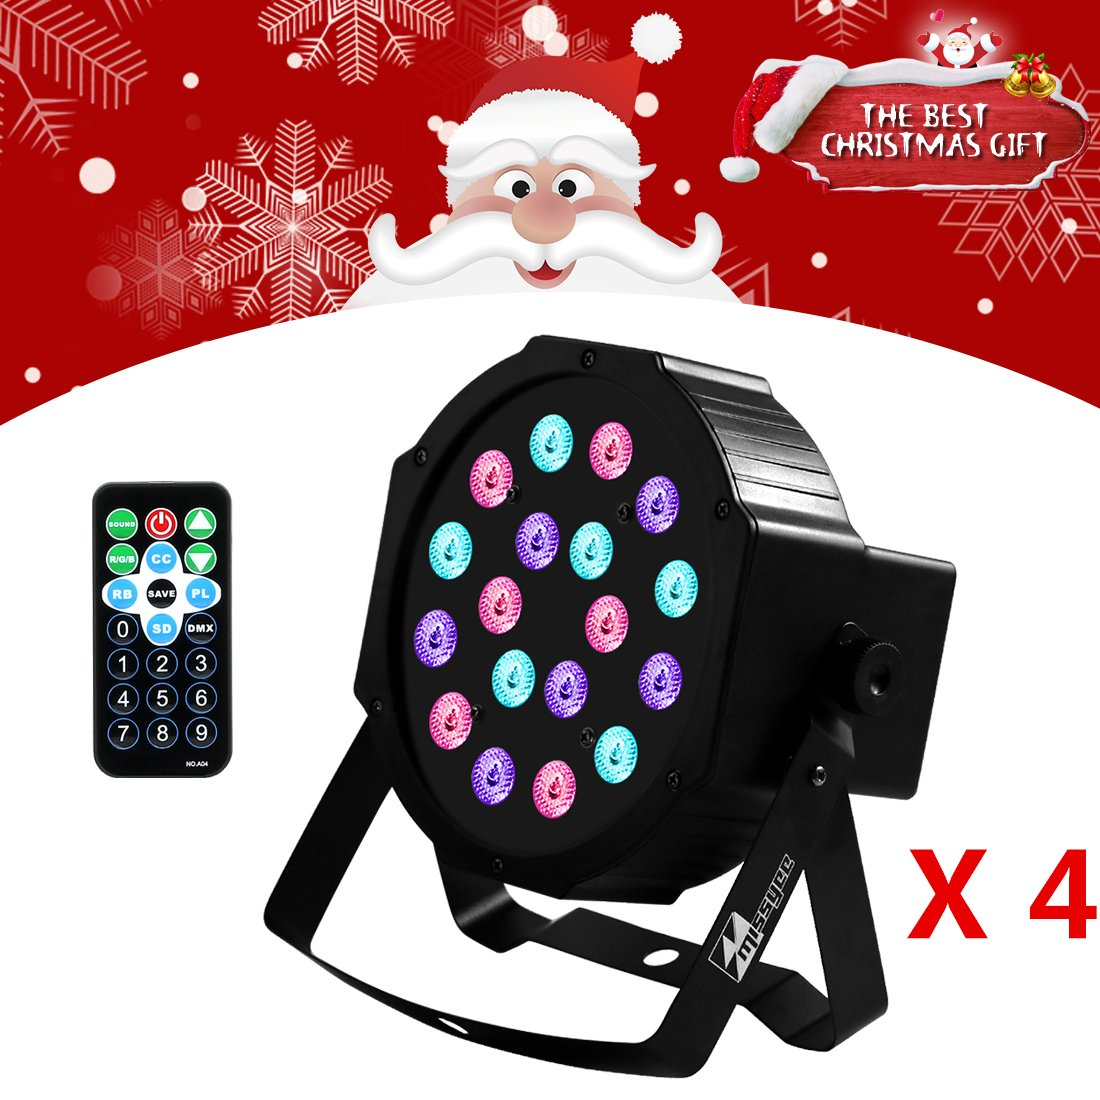 Uplights 18 RGB Led Up Lights, Missyee Sound Activated DMX Uplighting, LED Par Can Lights with Remote Control, DJ Uplighting Package for Wedding Birthday Home Party (4 pcs)